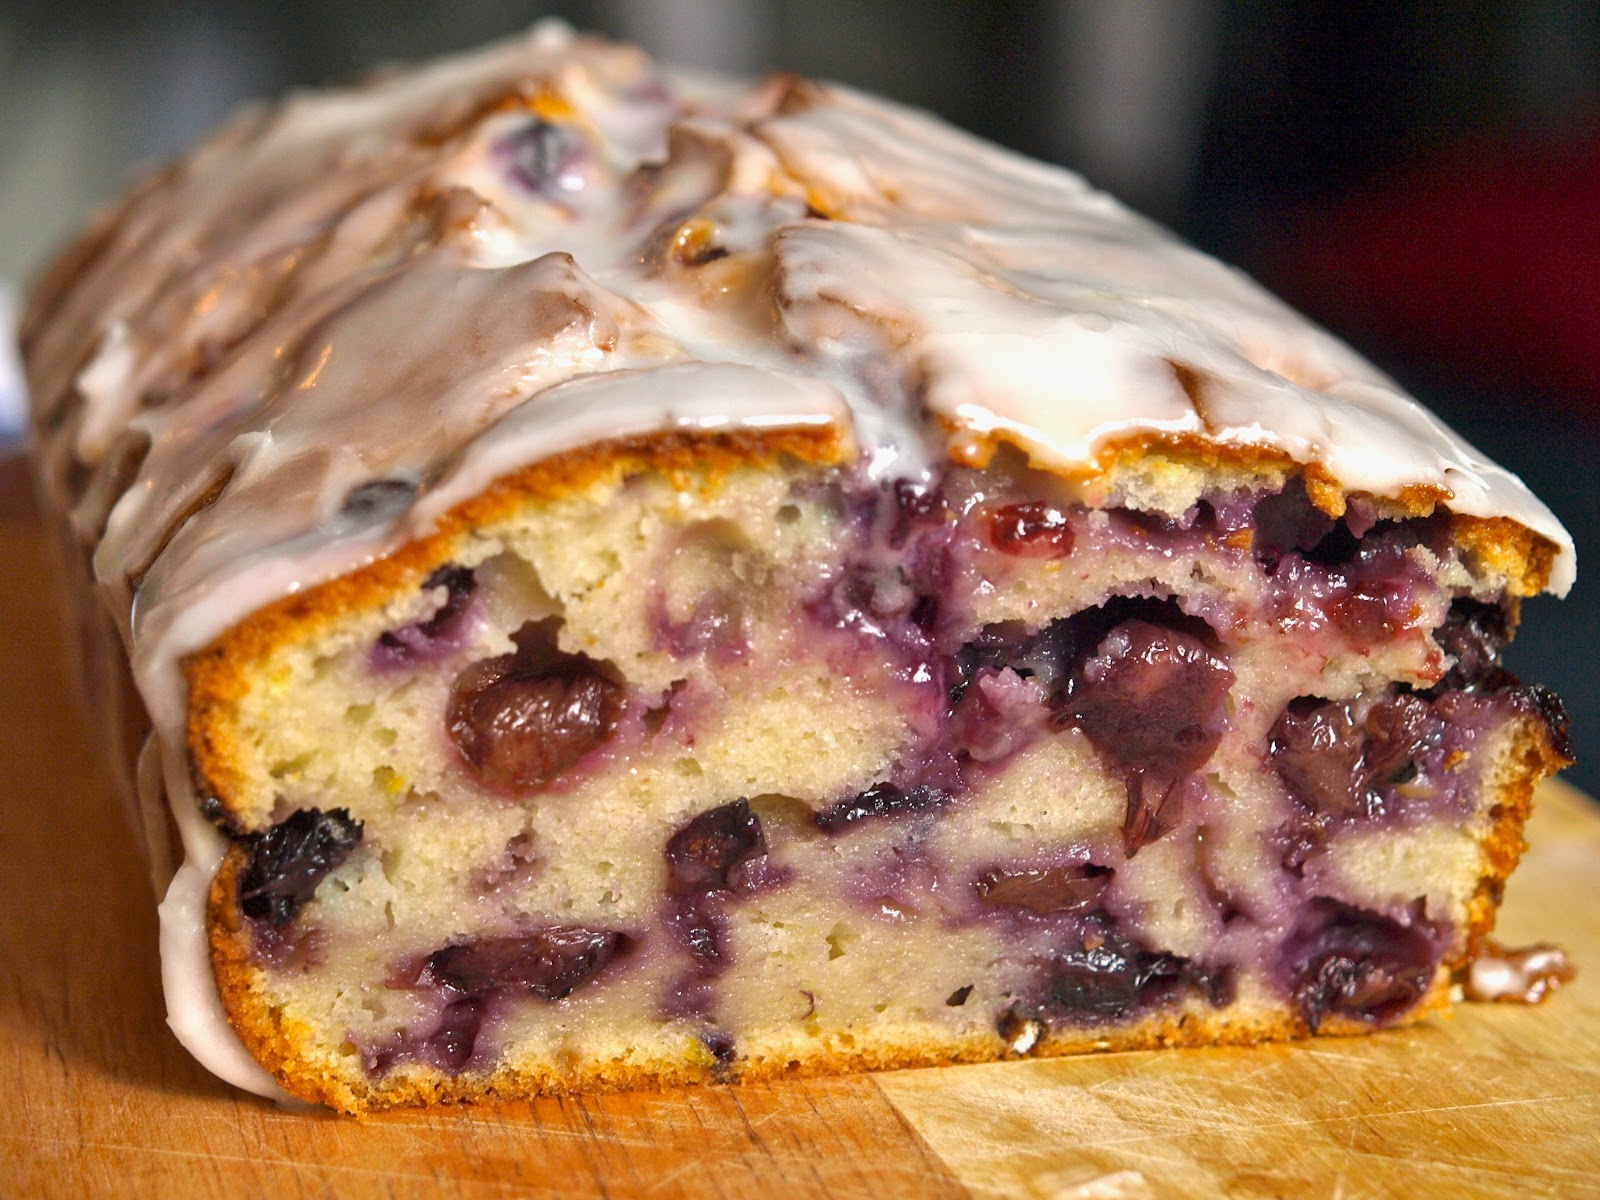 Blueberry & Lemon Yogurt Loaf - Flick of the Whisk